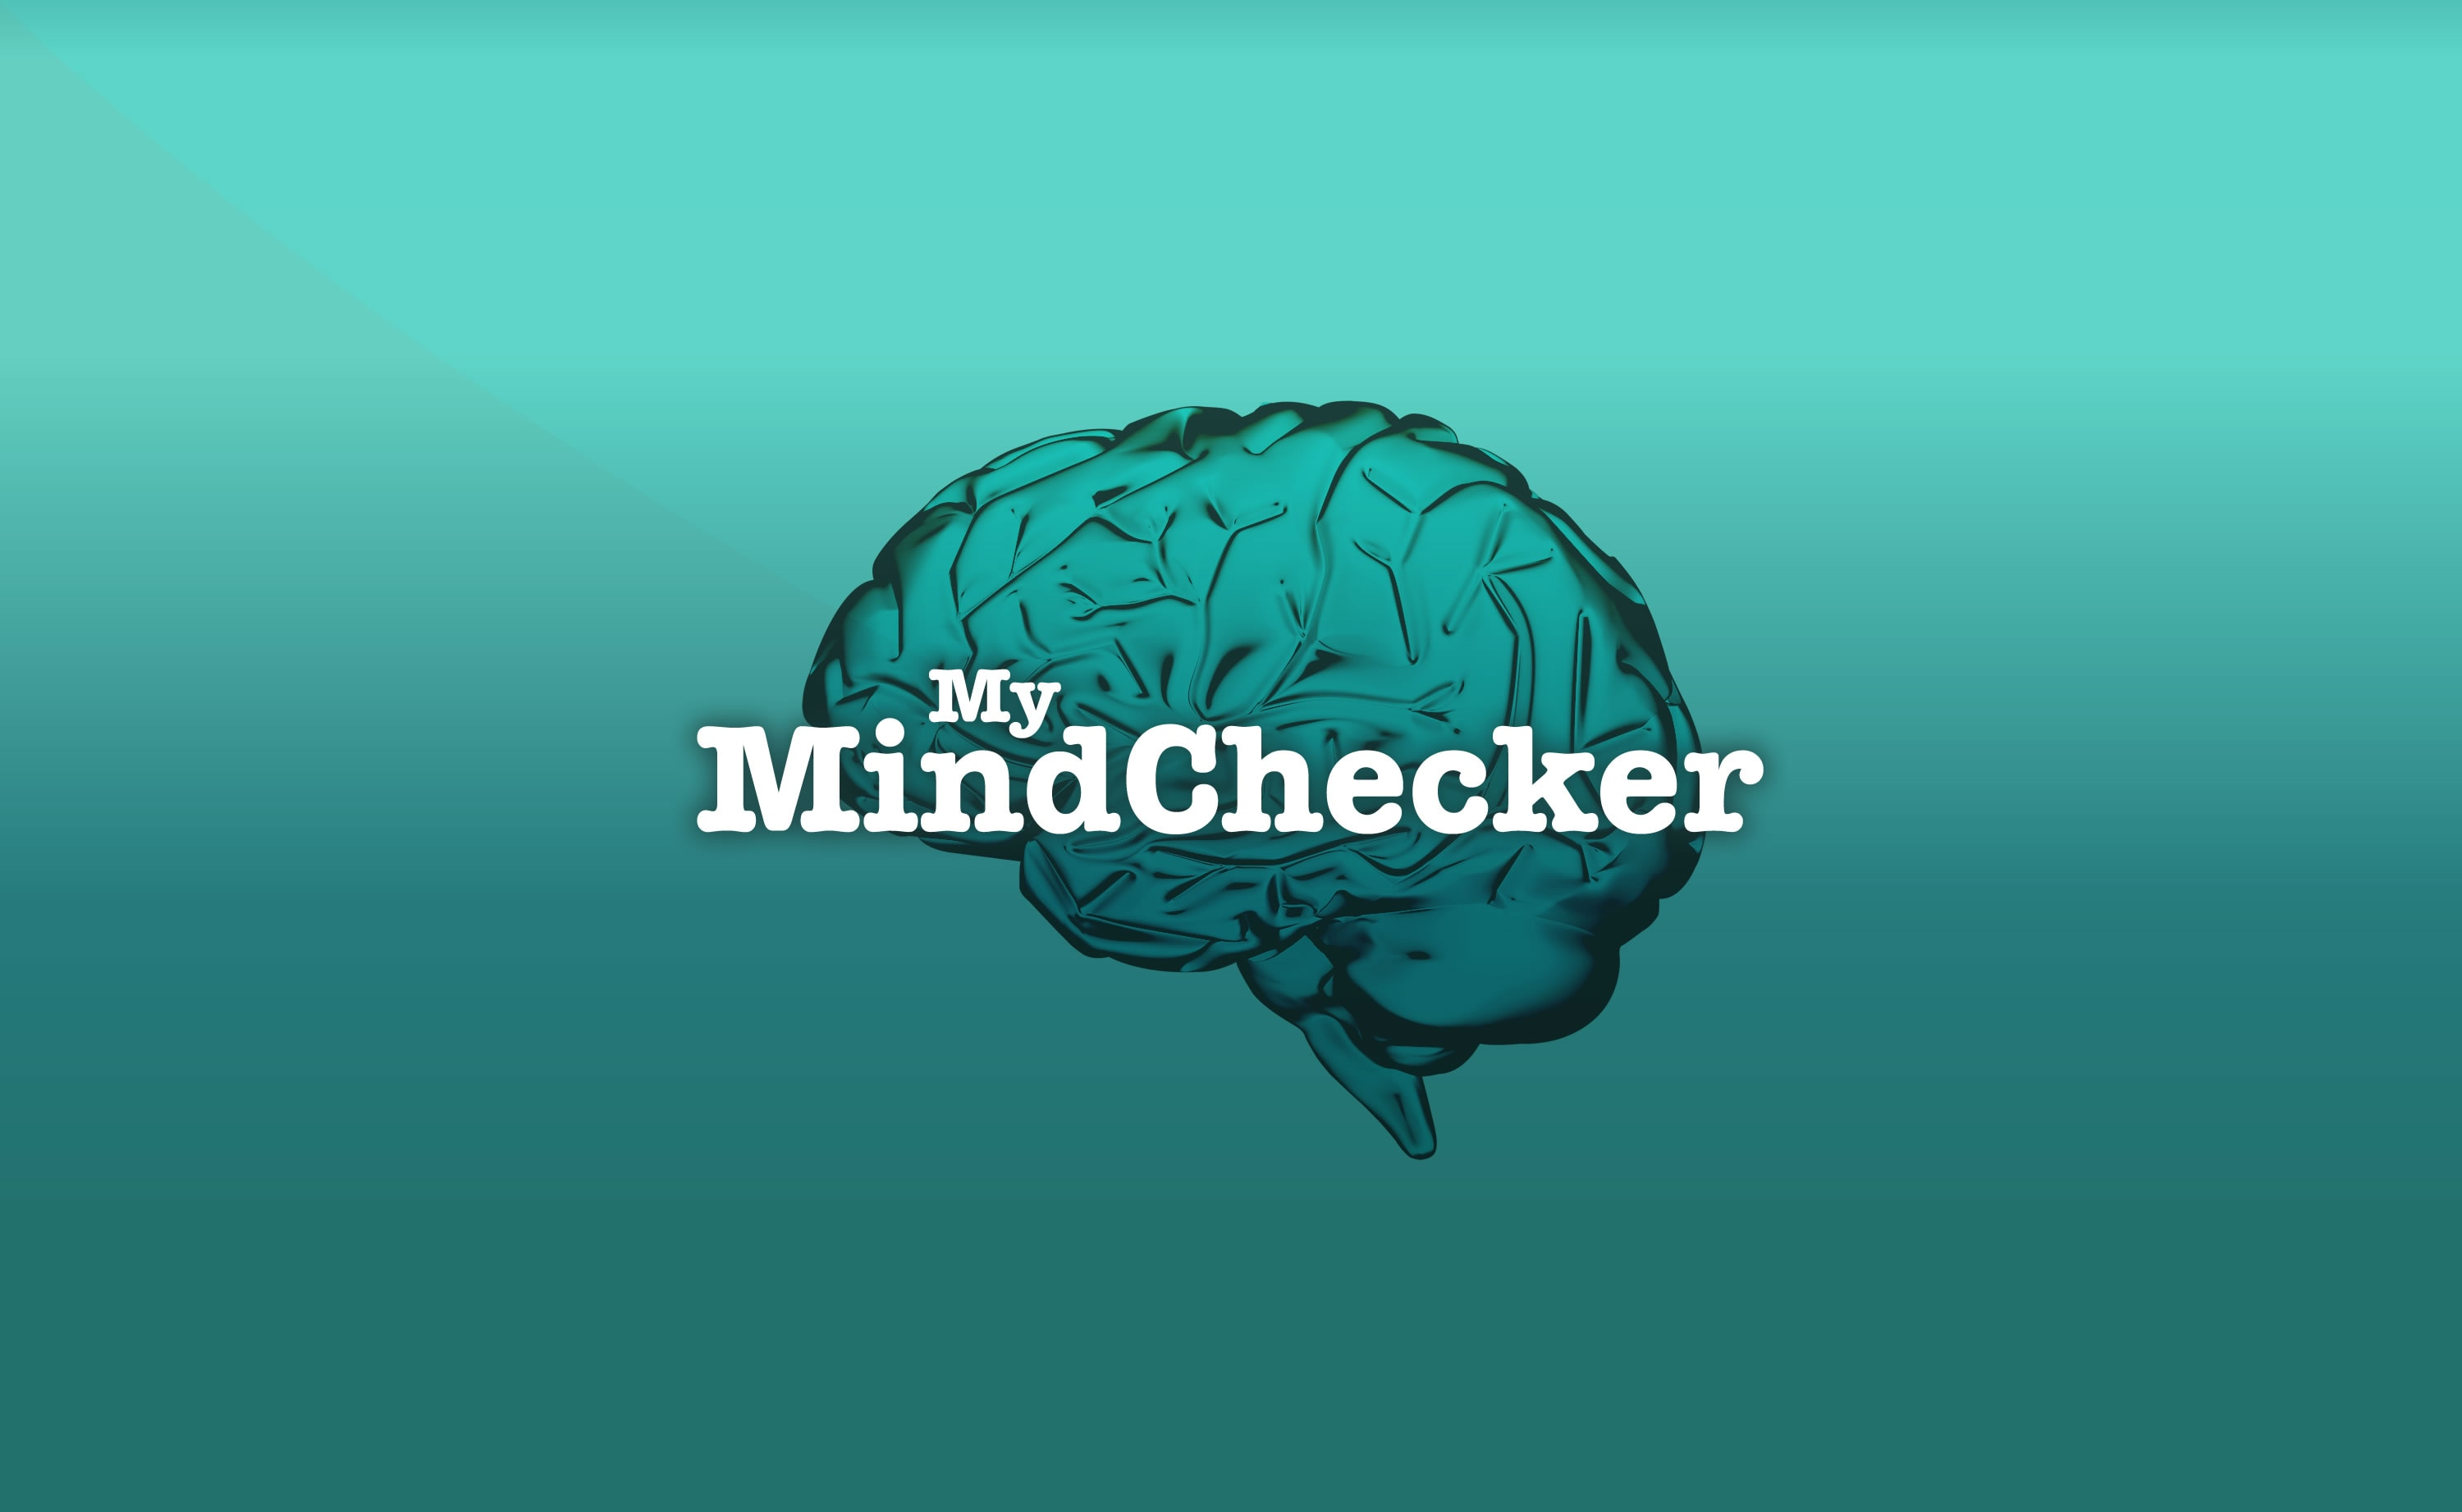 My MindChecker